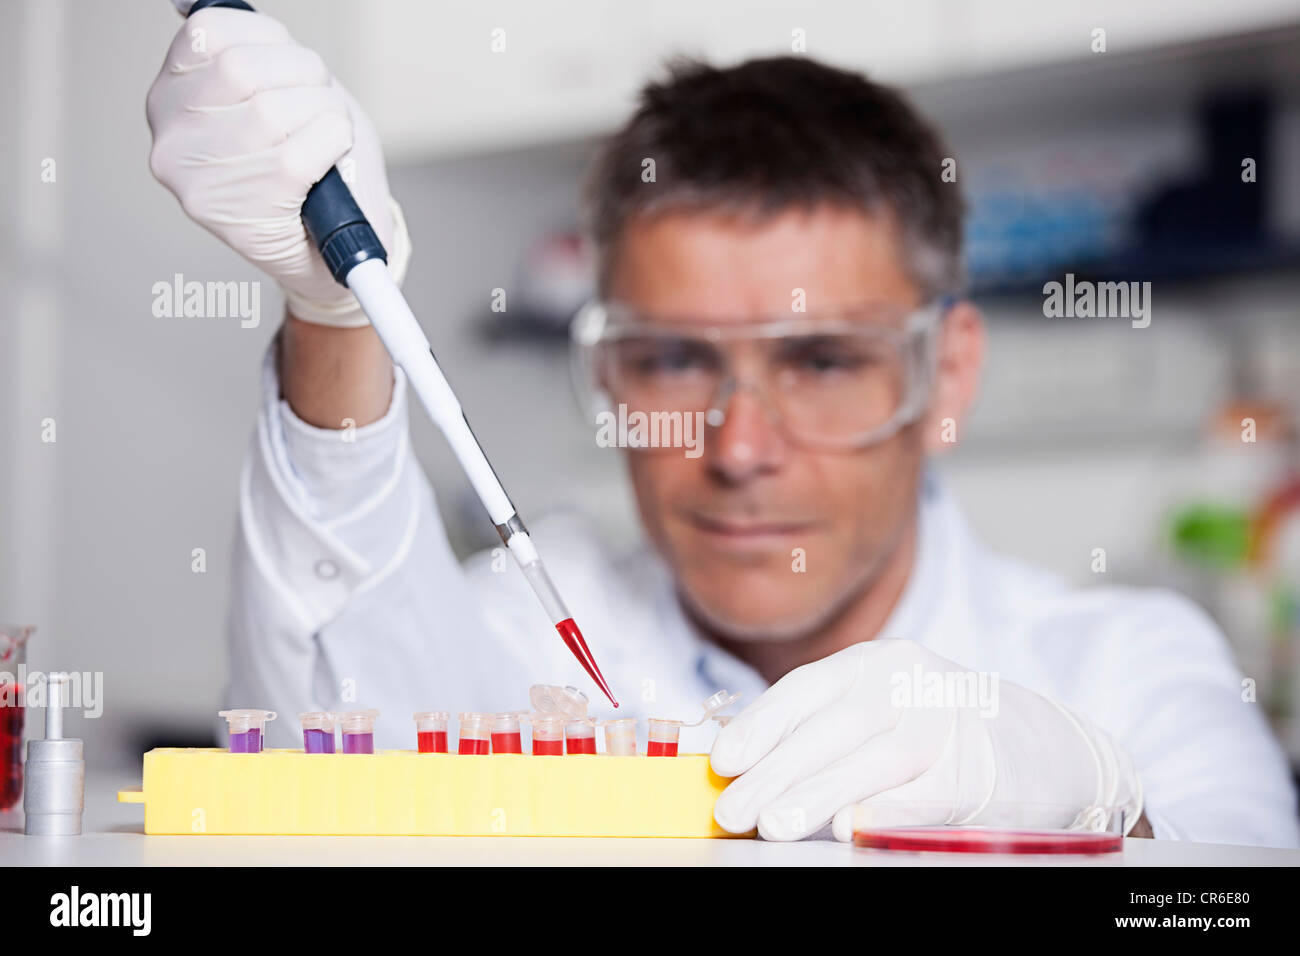 Germany, Bavaria, Munich, Scientist pouring red liquid with pipette in test tube for medical research in laboratory - Stock Image